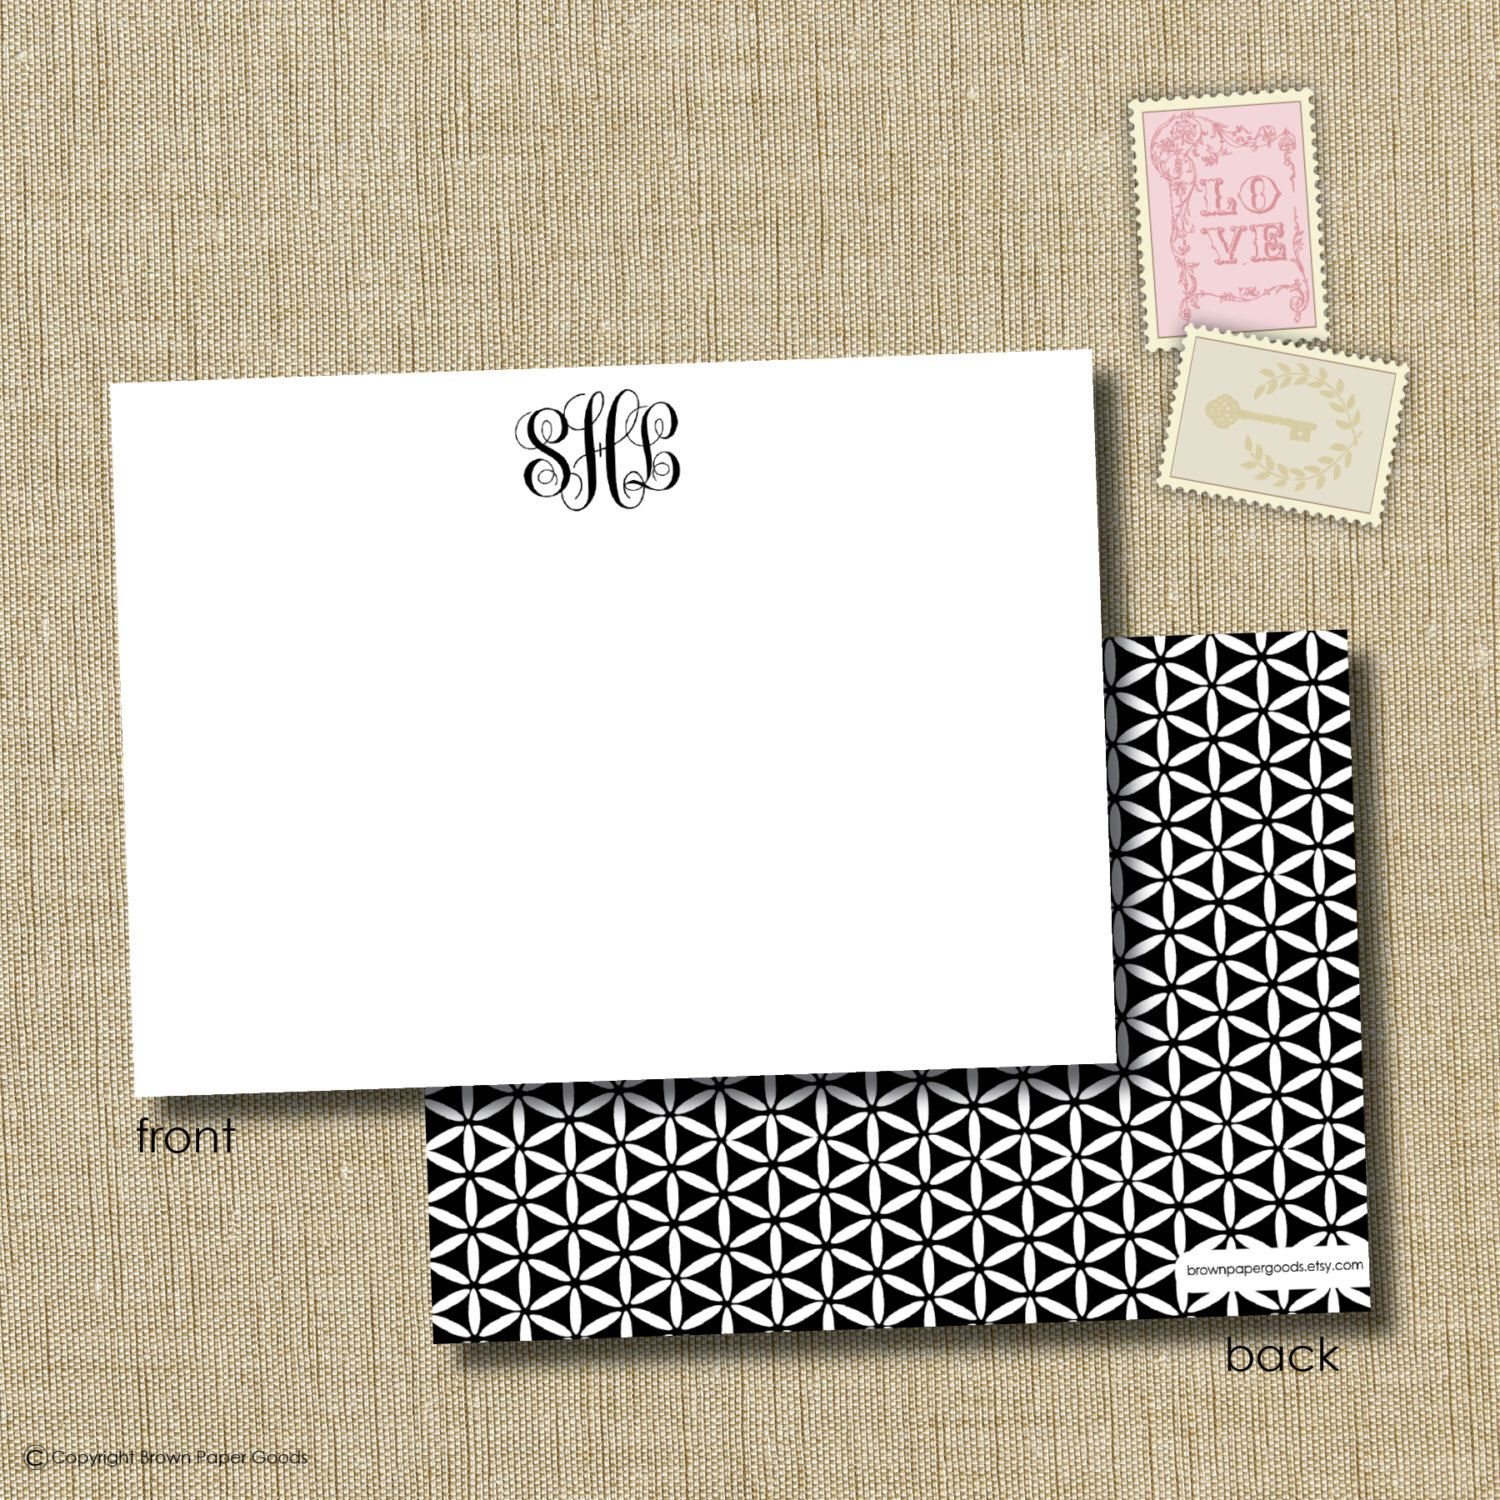 premium personalized social stationery. note card set. fine stationery. classic monogram by brownpaperstudios on Etsy https://www.etsy.com/listing/95638795/premium-personalized-social-stationery